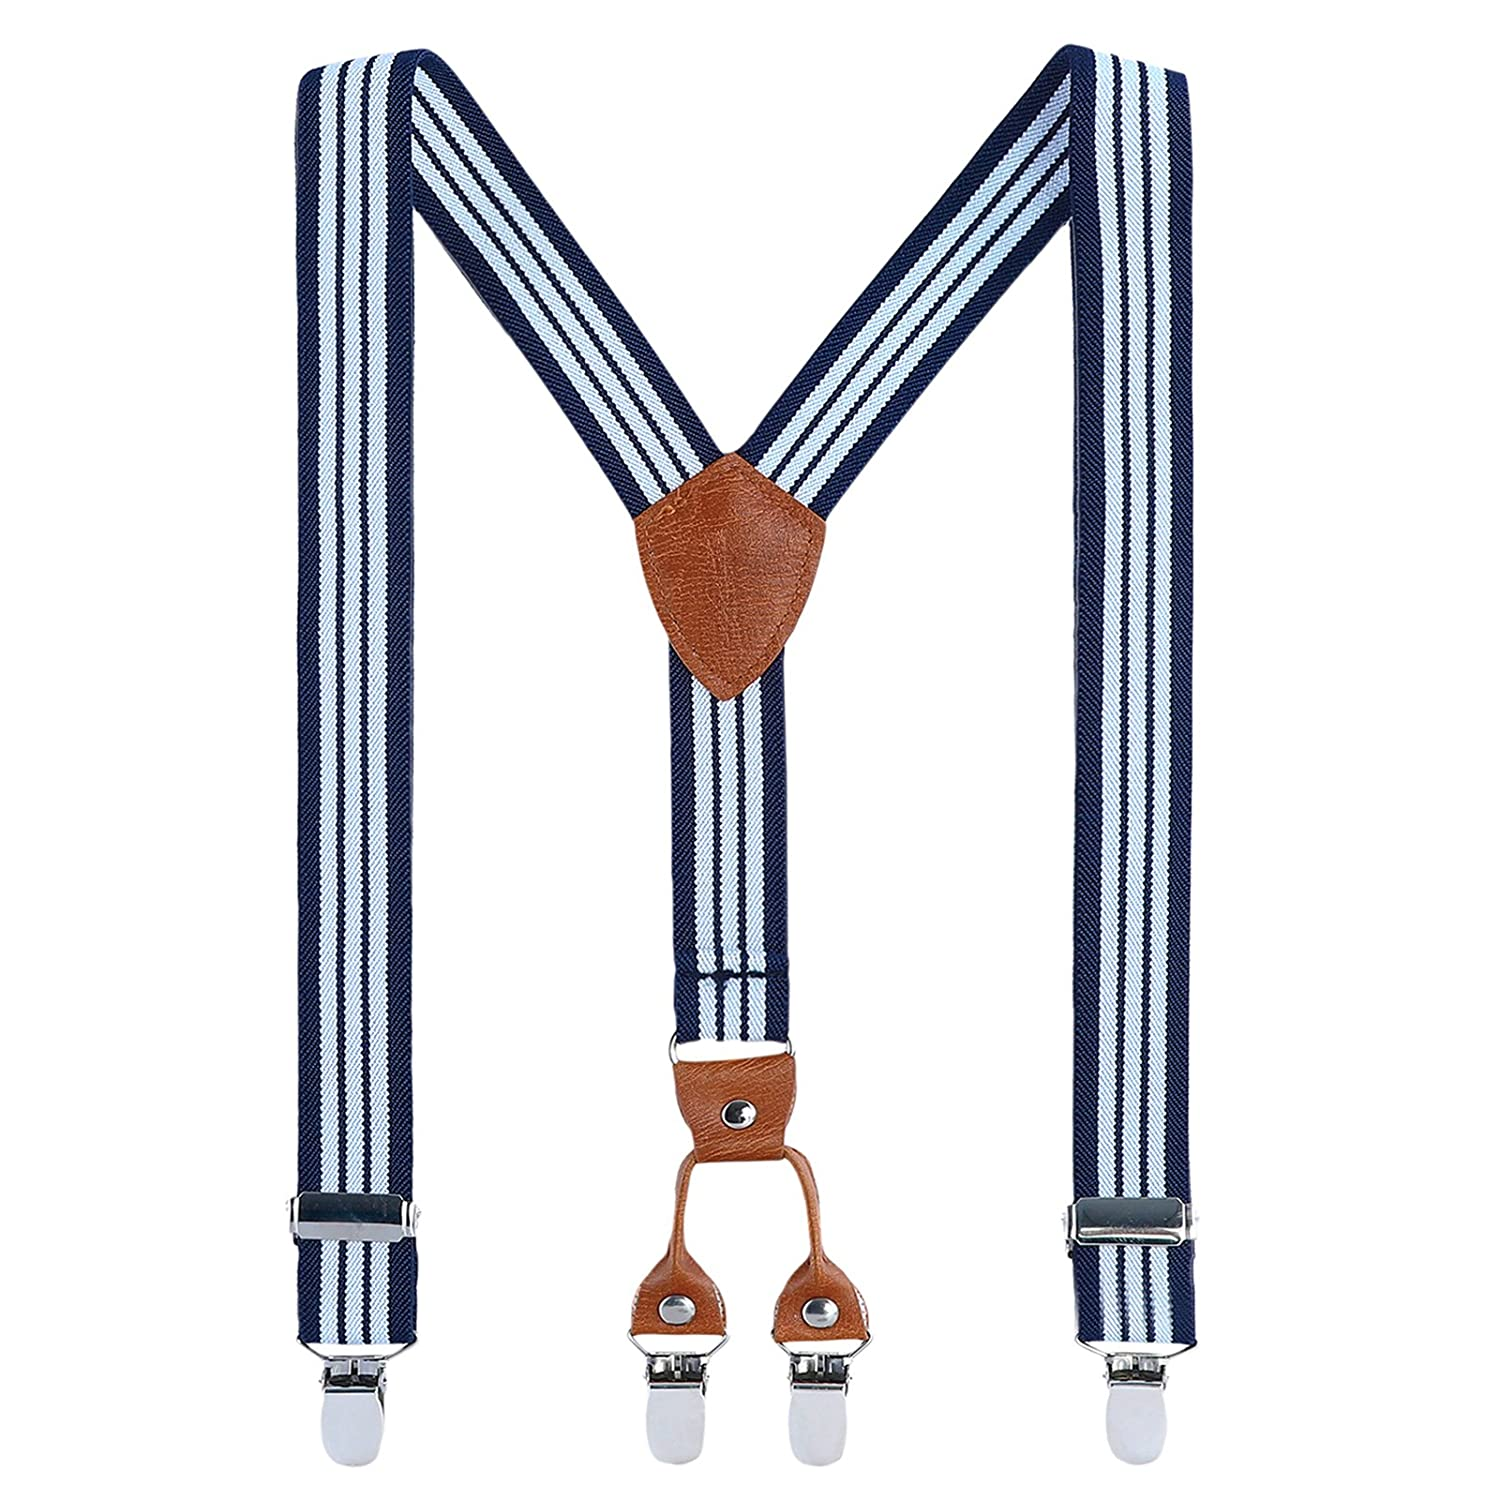 Children Braces Clip on Suspenders - Grain Leather Elasticated Adjustable with 4 Clips Y shape Suspender